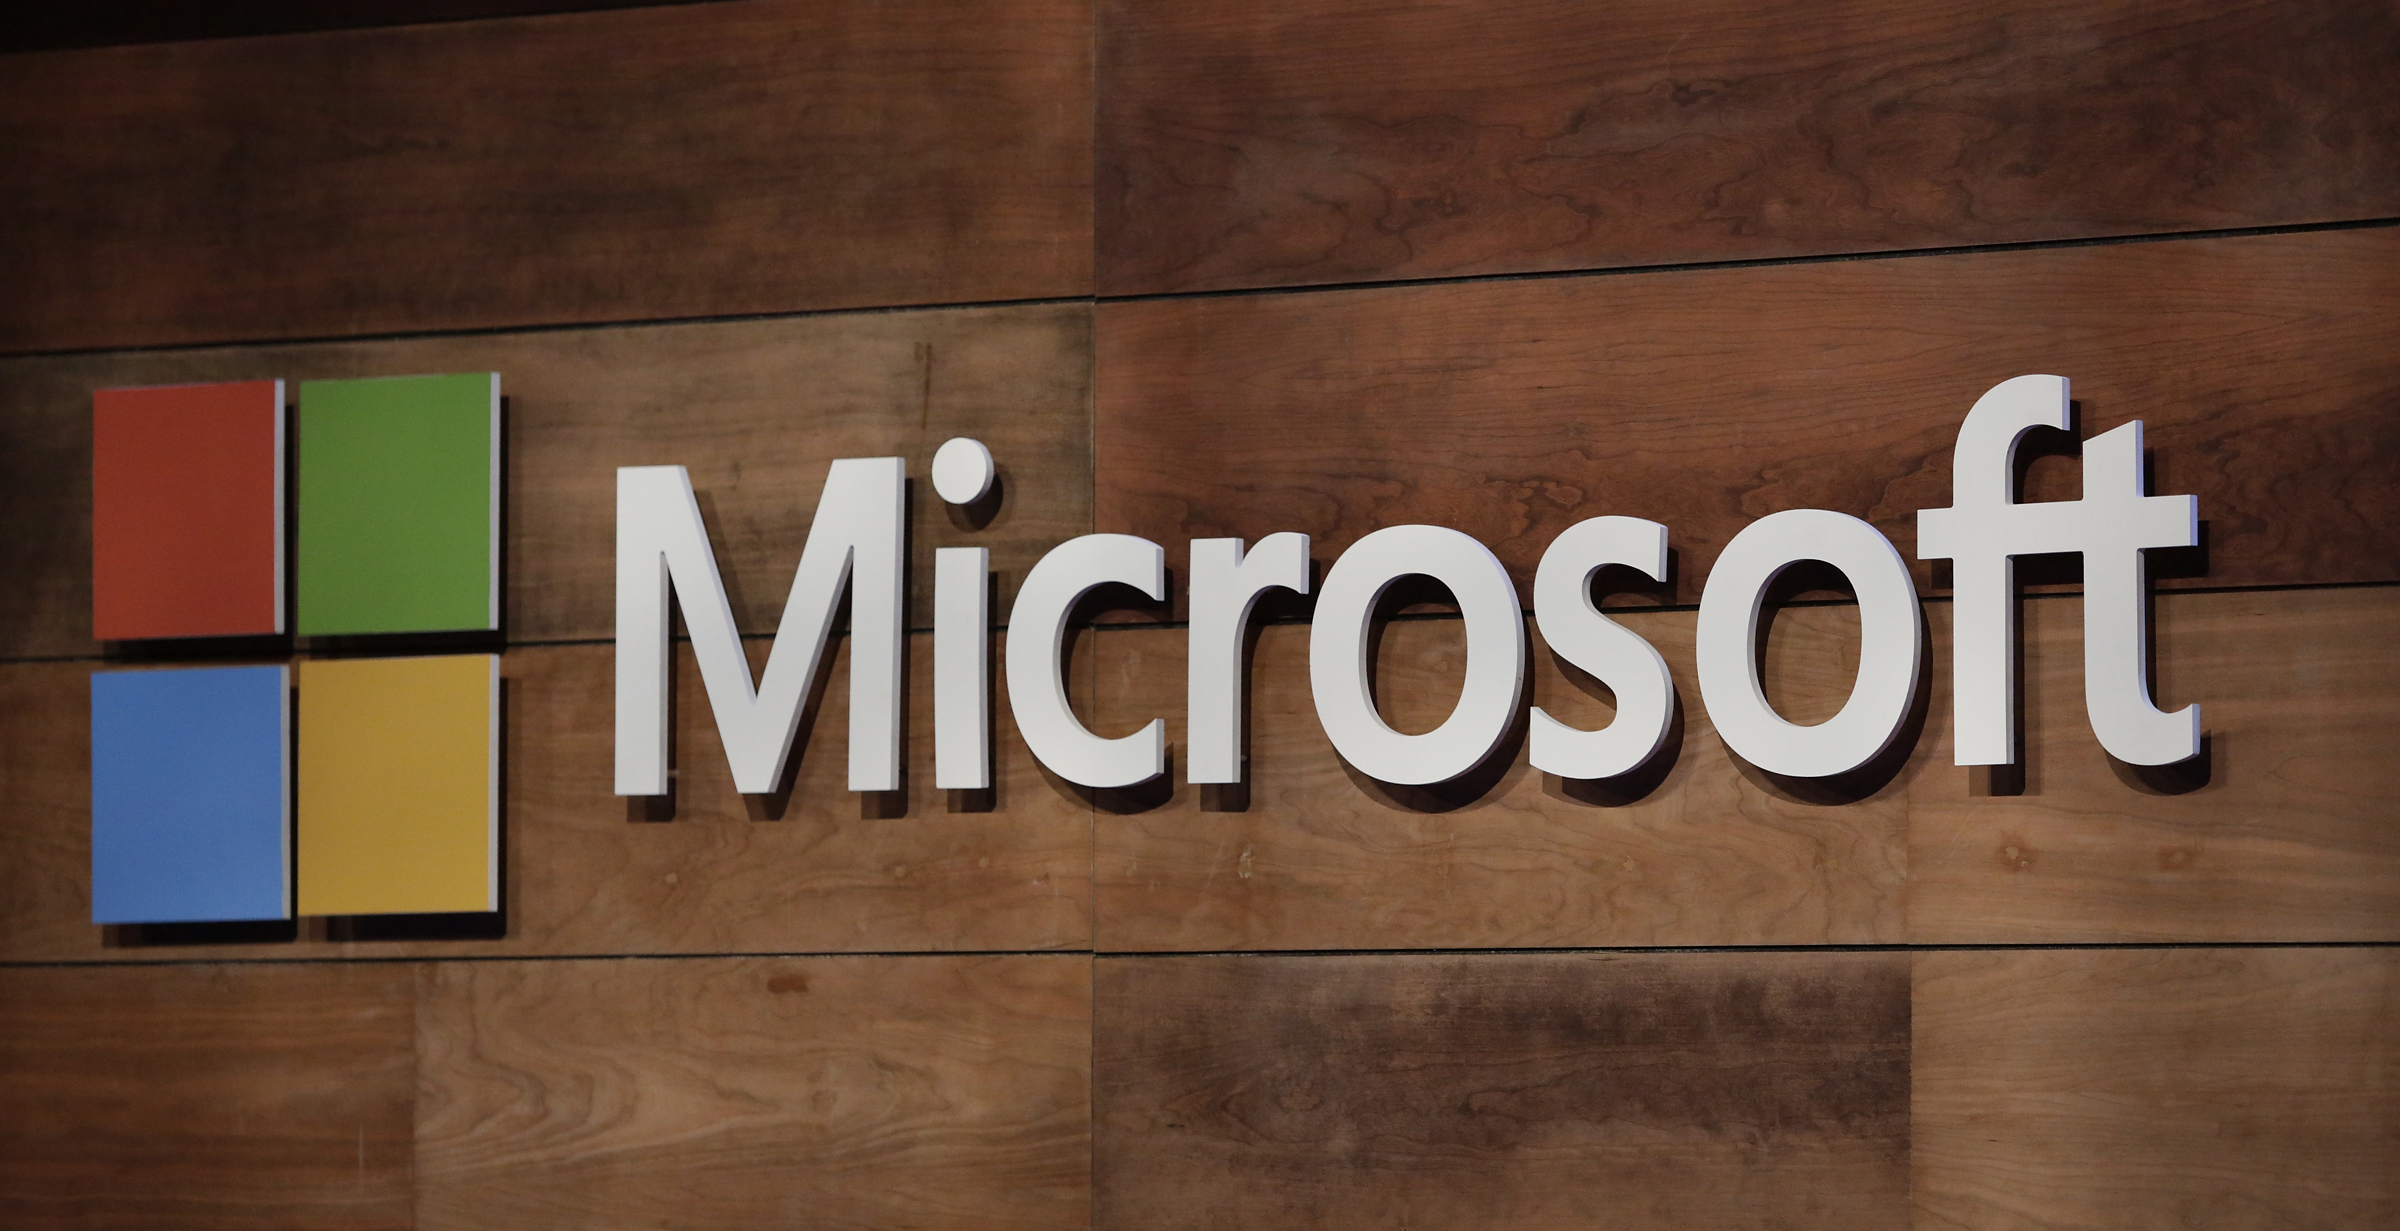 The Microsoft logo is pictured during the annual Microsoft shareholders meeting in Bellevue, Washington on November 29, 2017.